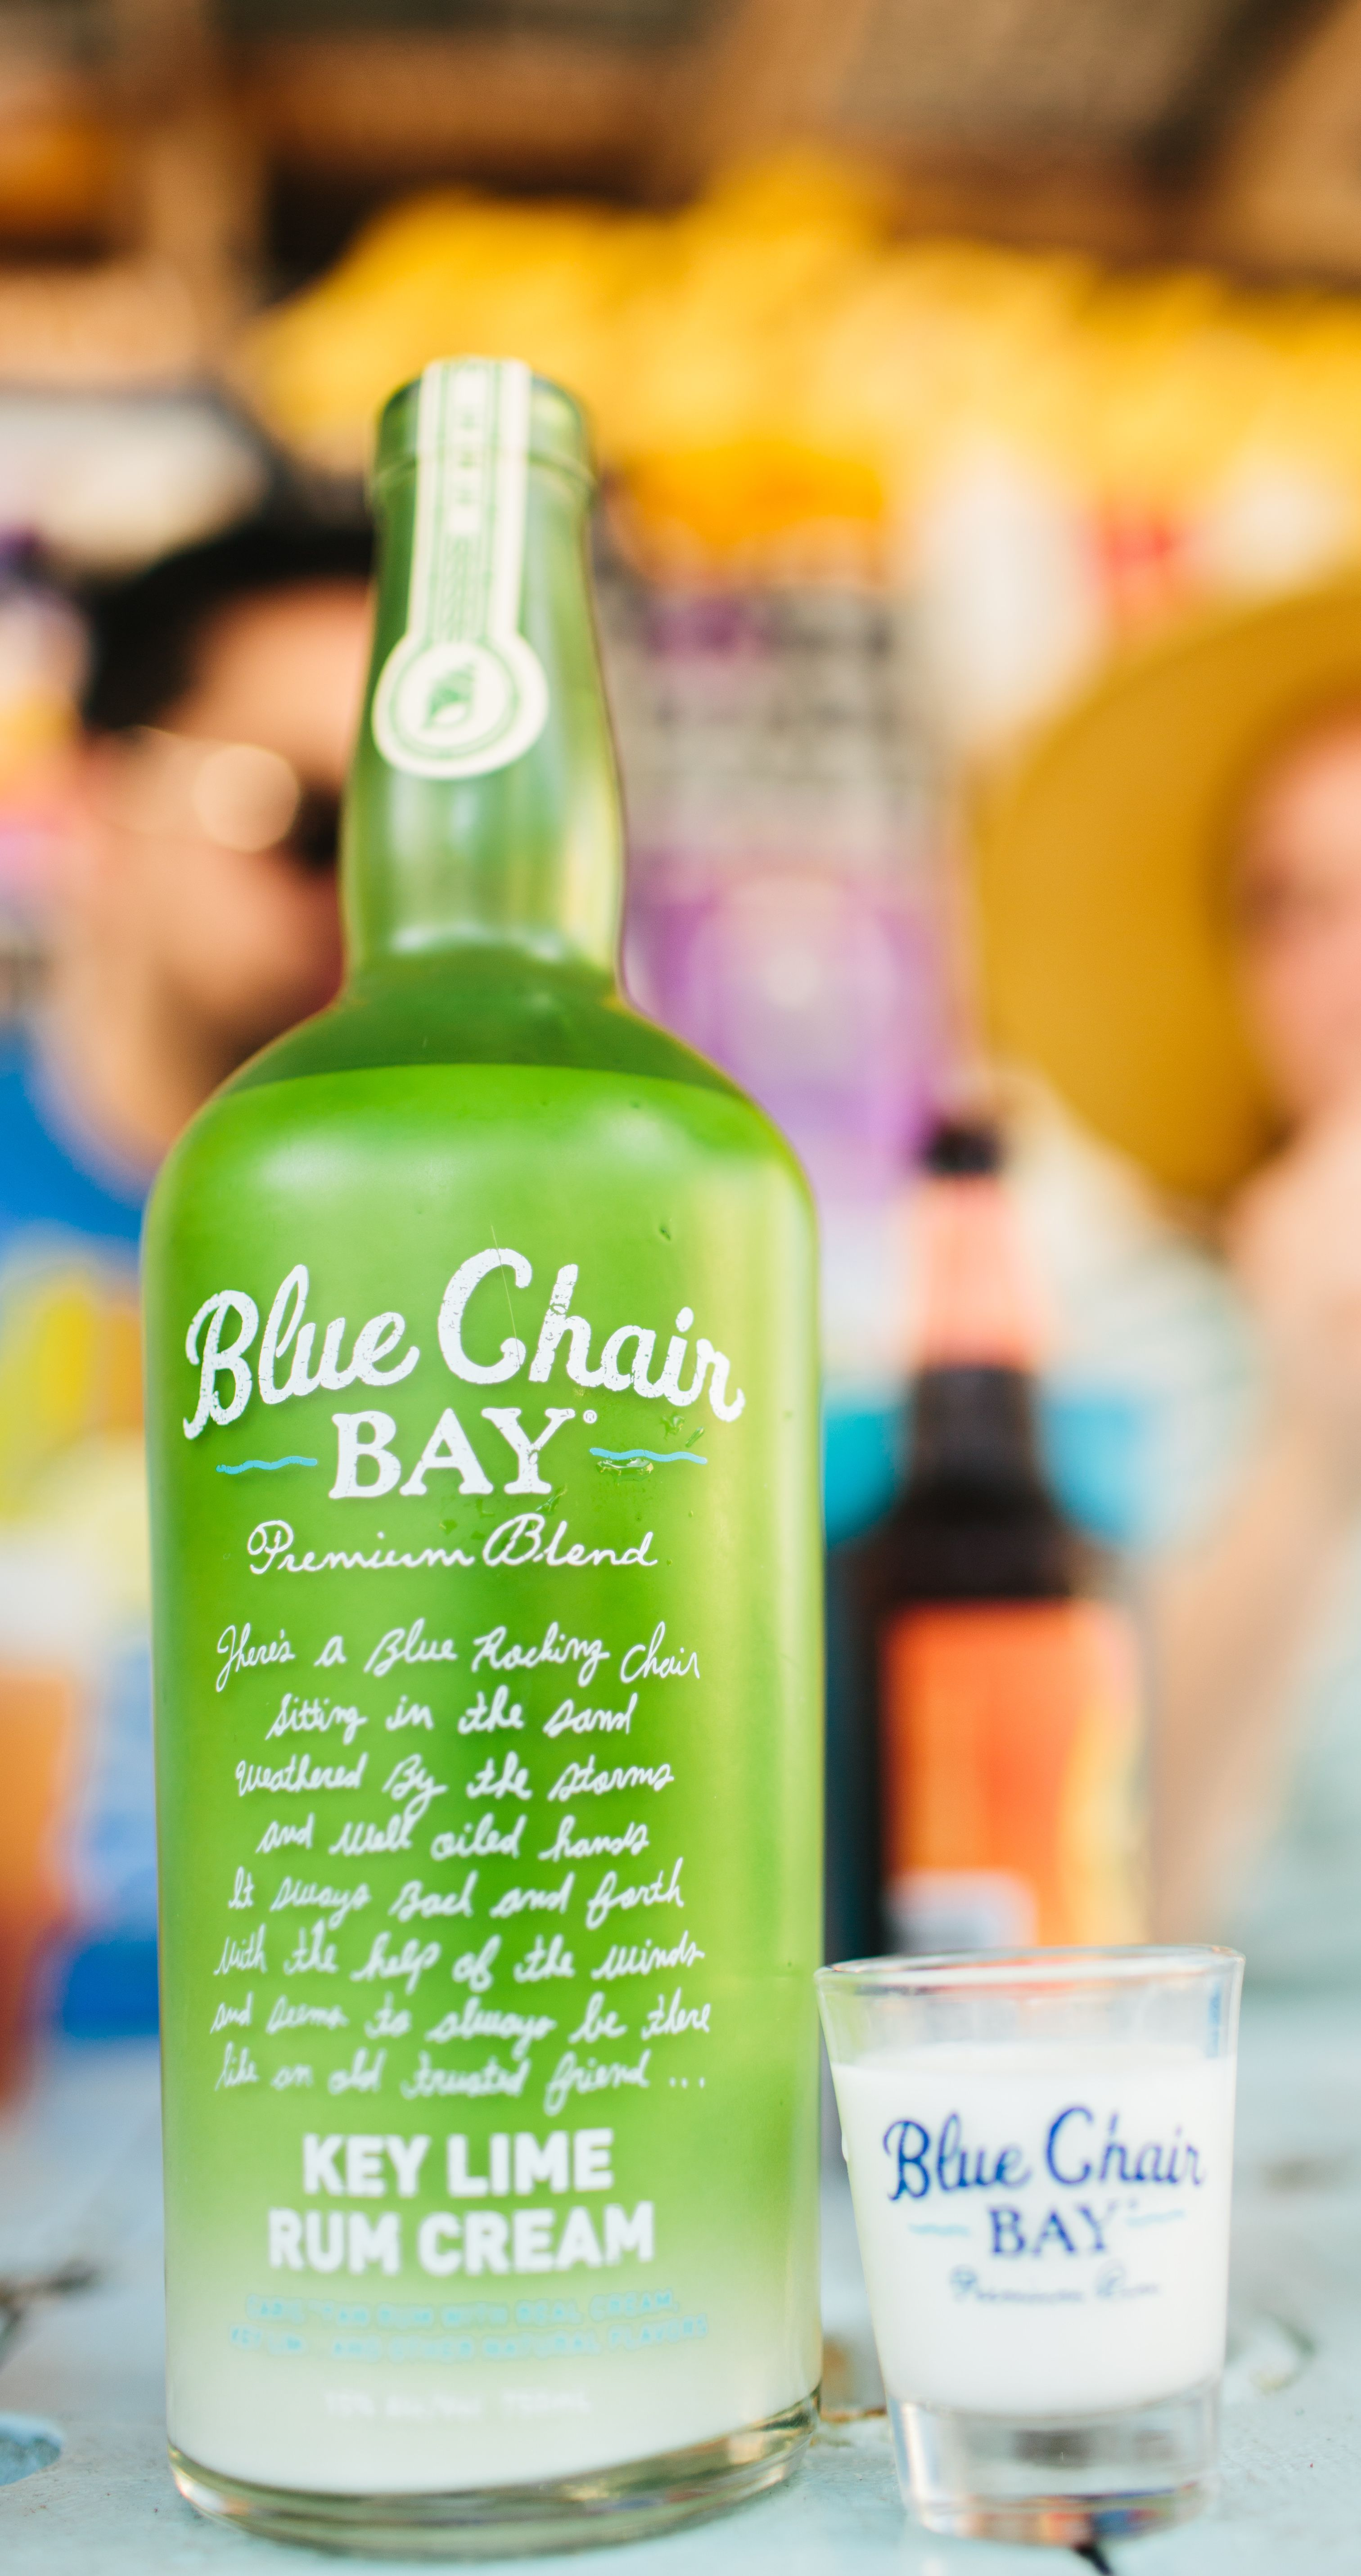 BUTTERY LIME SHOOTER 75 oz Blue Chair Bay Key Lime Rum Cream